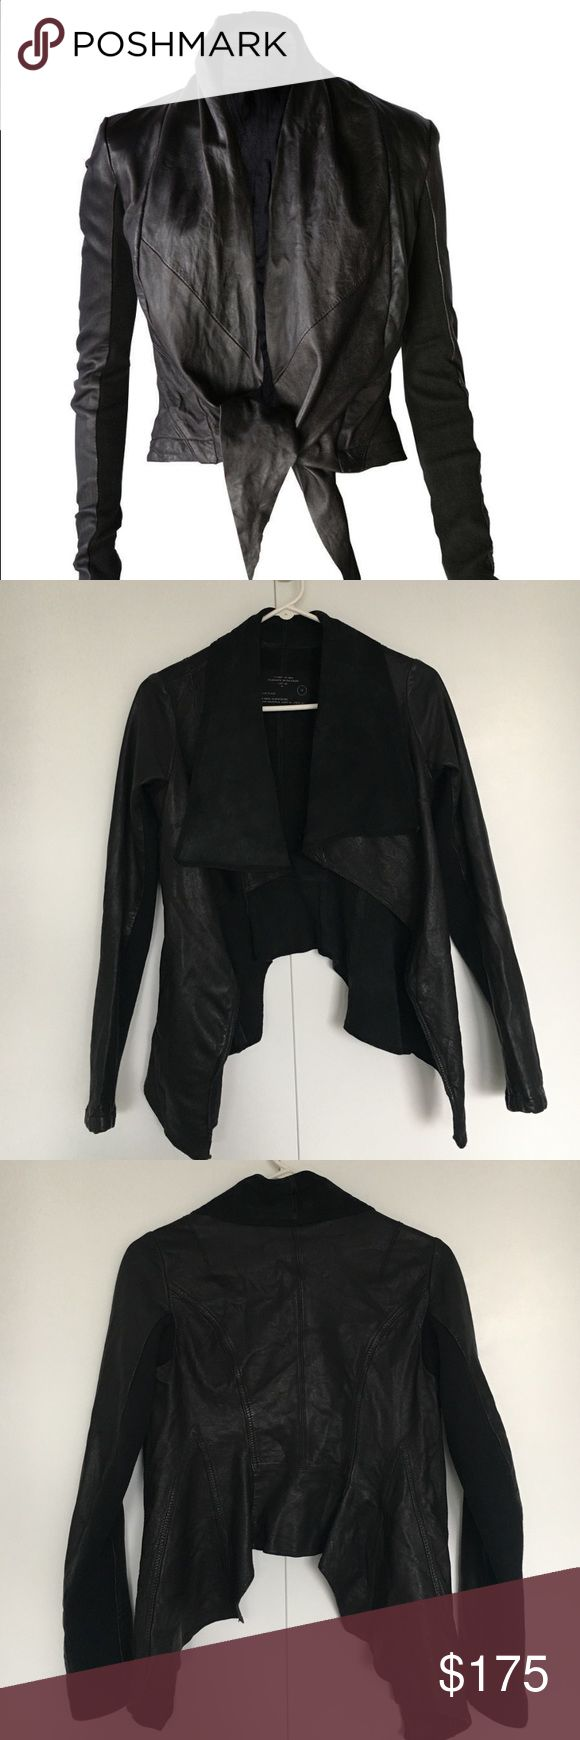 All Saints Waterfall Leather Jacket Gorgeous light-weight genuine leather jacket, only flaw is a small mark on the top left hand shoulder, but hardly noticeable. There are 2 front pockets and the under arm is a breathable knitted jersey. Size UK 12, would fit a 4-6 best All Saints Jackets & Coats